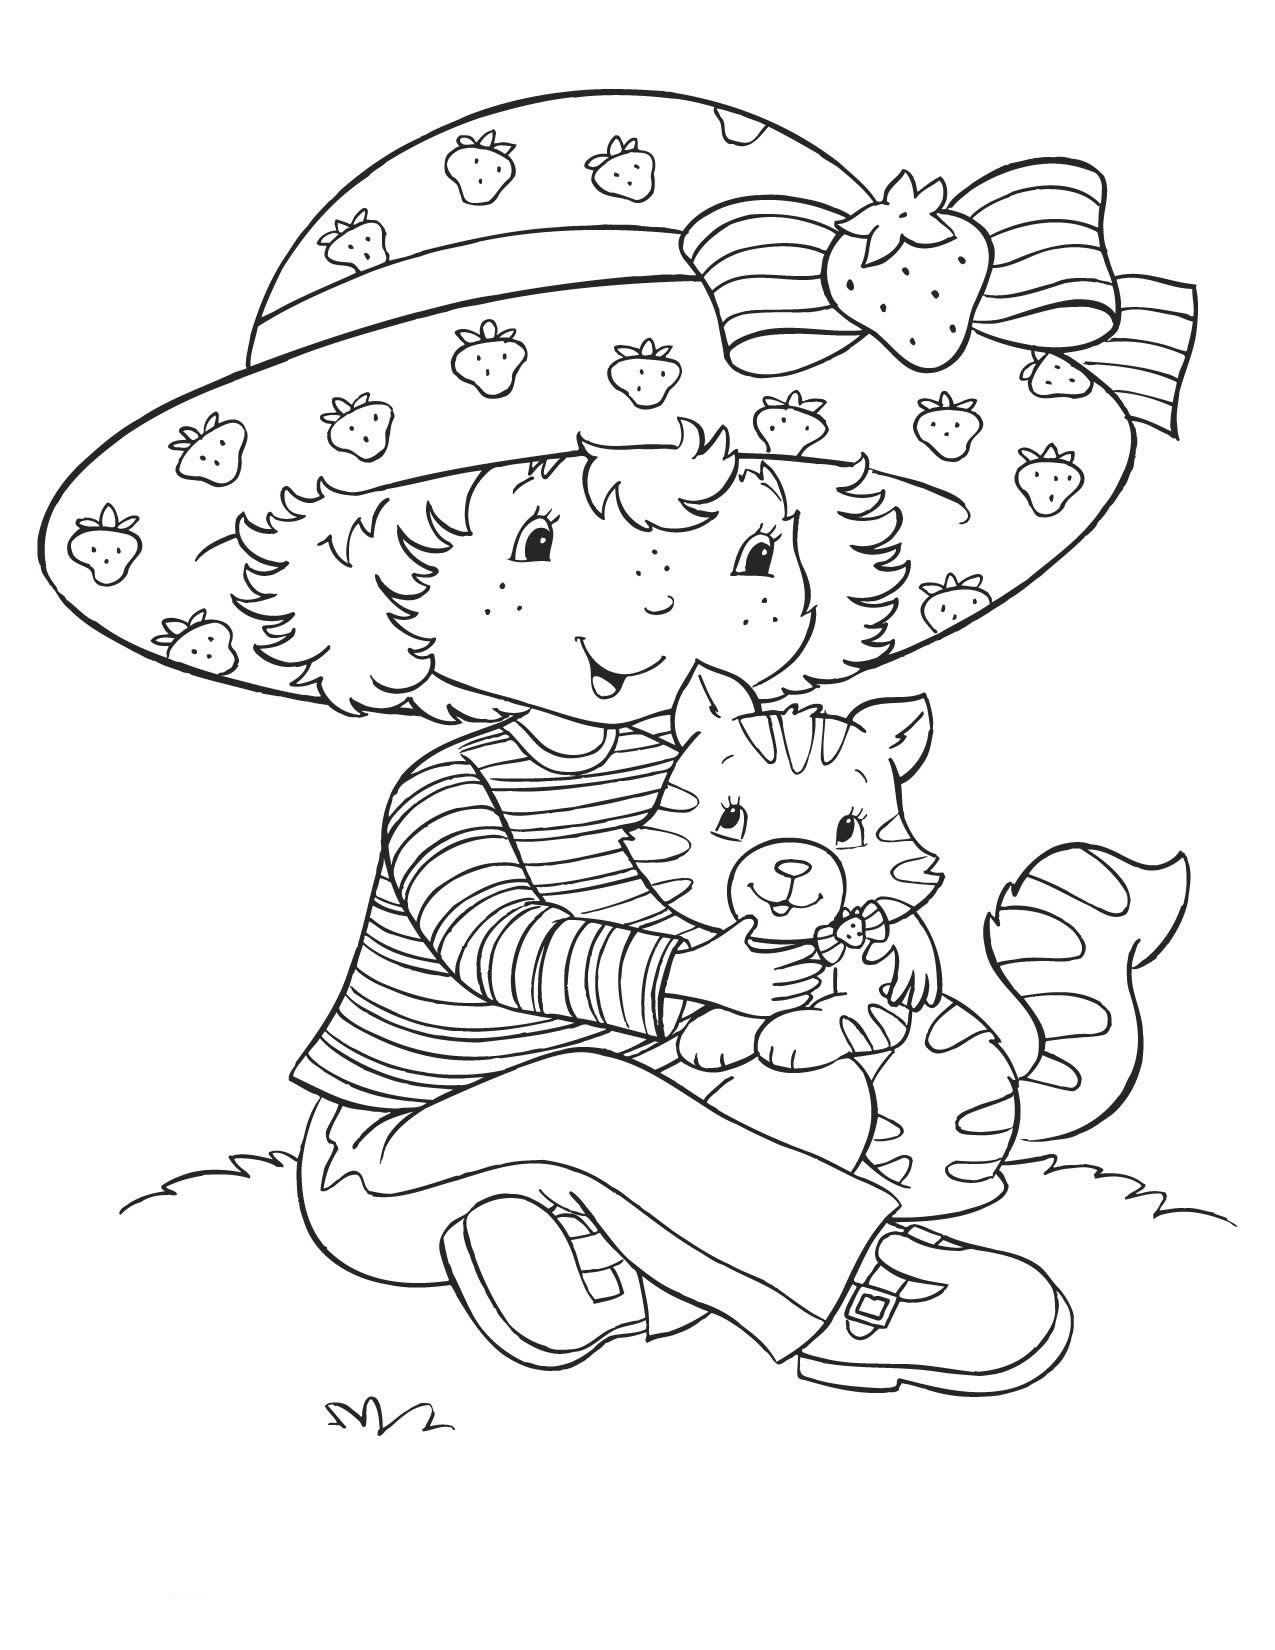 Blueberry Coloring Pages - Best Coloring Pages For Kids | 1650x1275